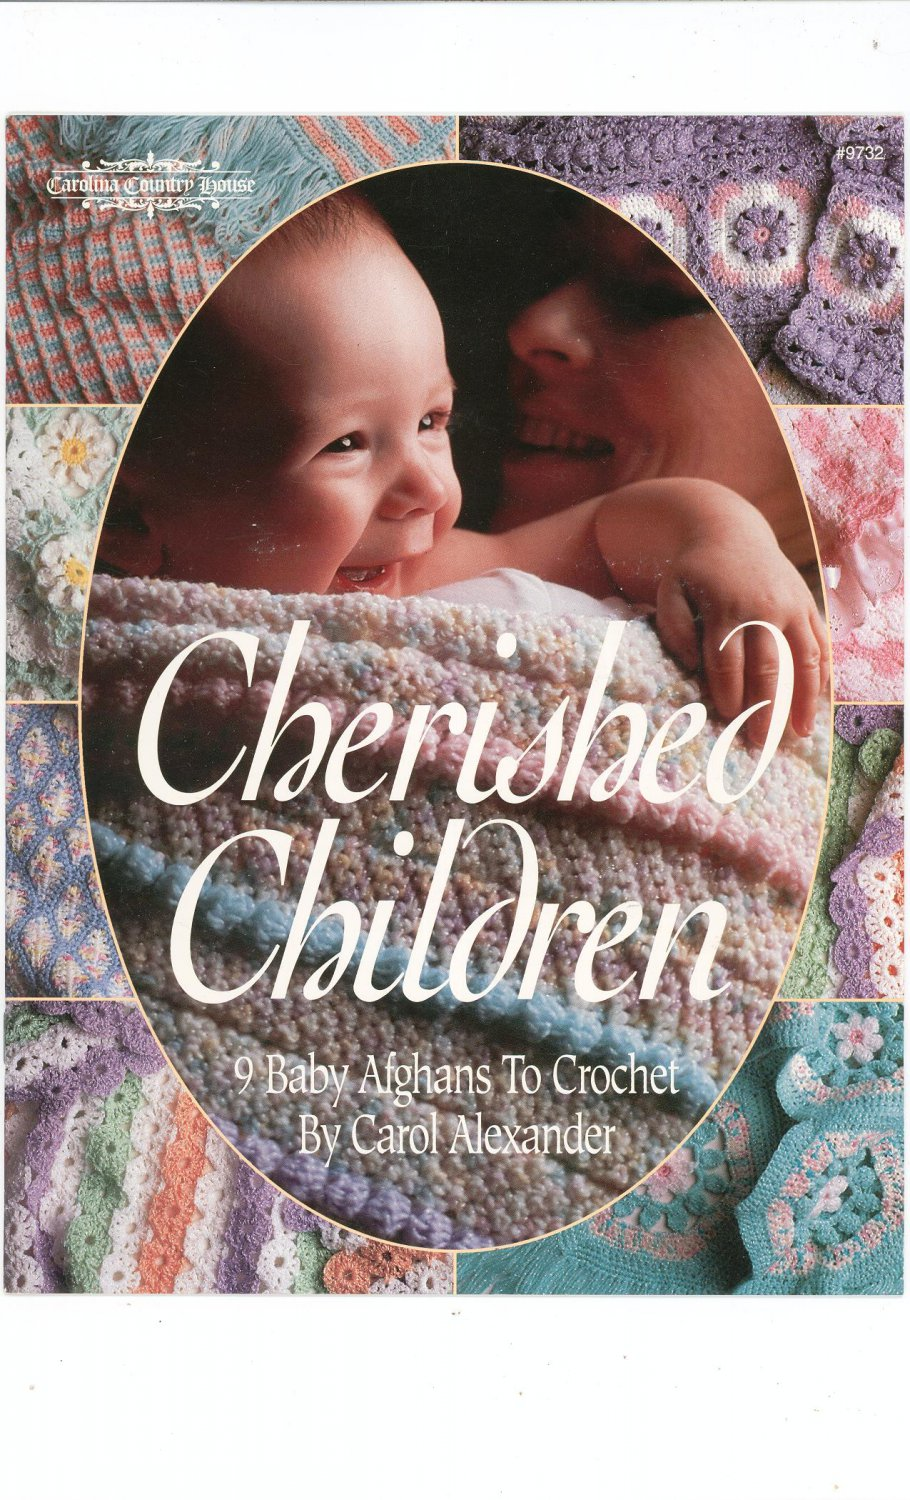 Cherished Children Afghans To Crochet By Carolina Country House # 9732 Carol Alexander